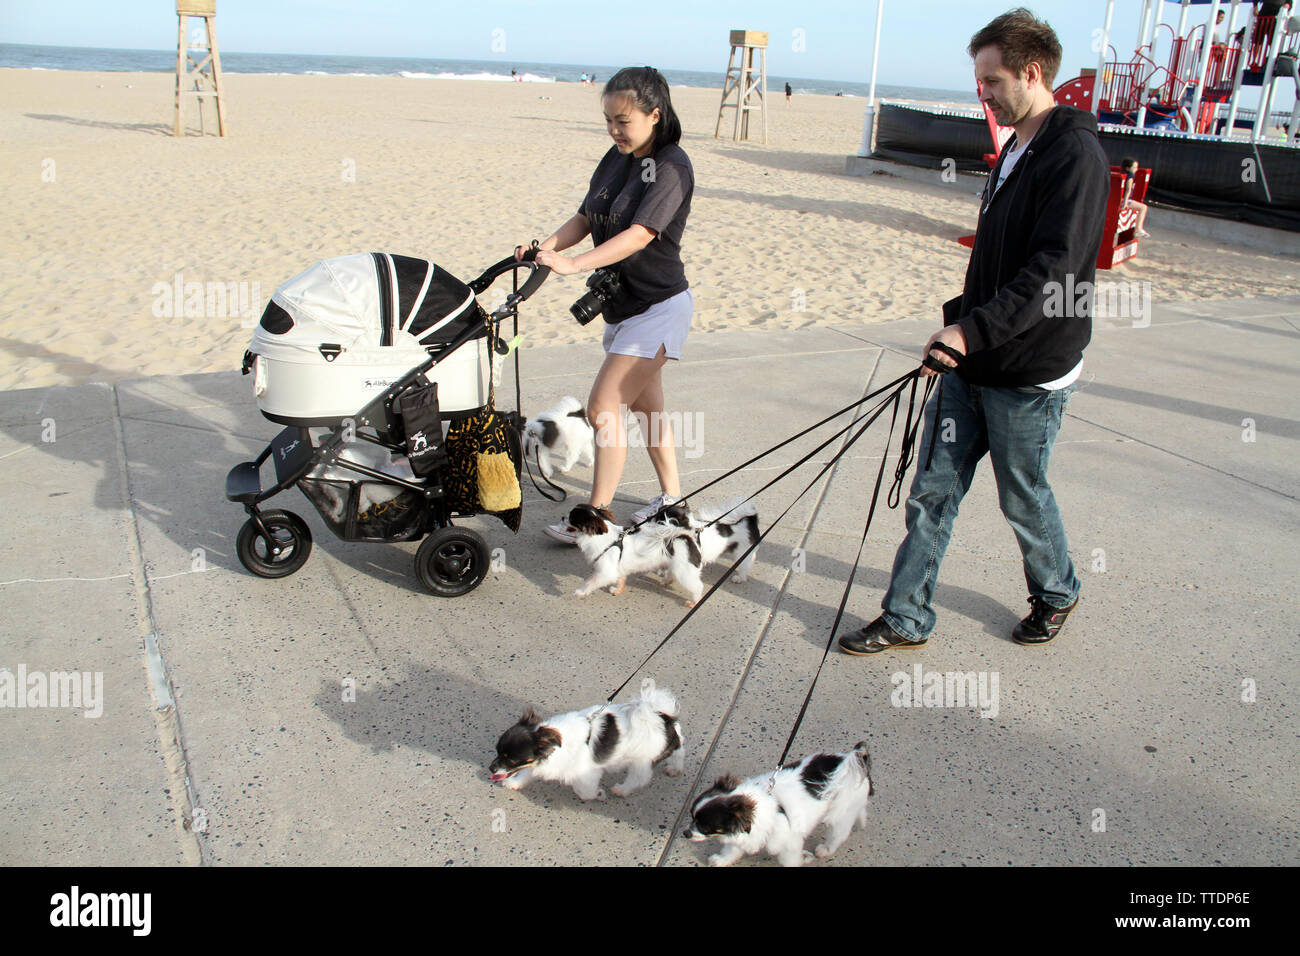 Family walking many Japanese Chin dogs on the boardwalk of Ocean City, MD, USA - Stock Image